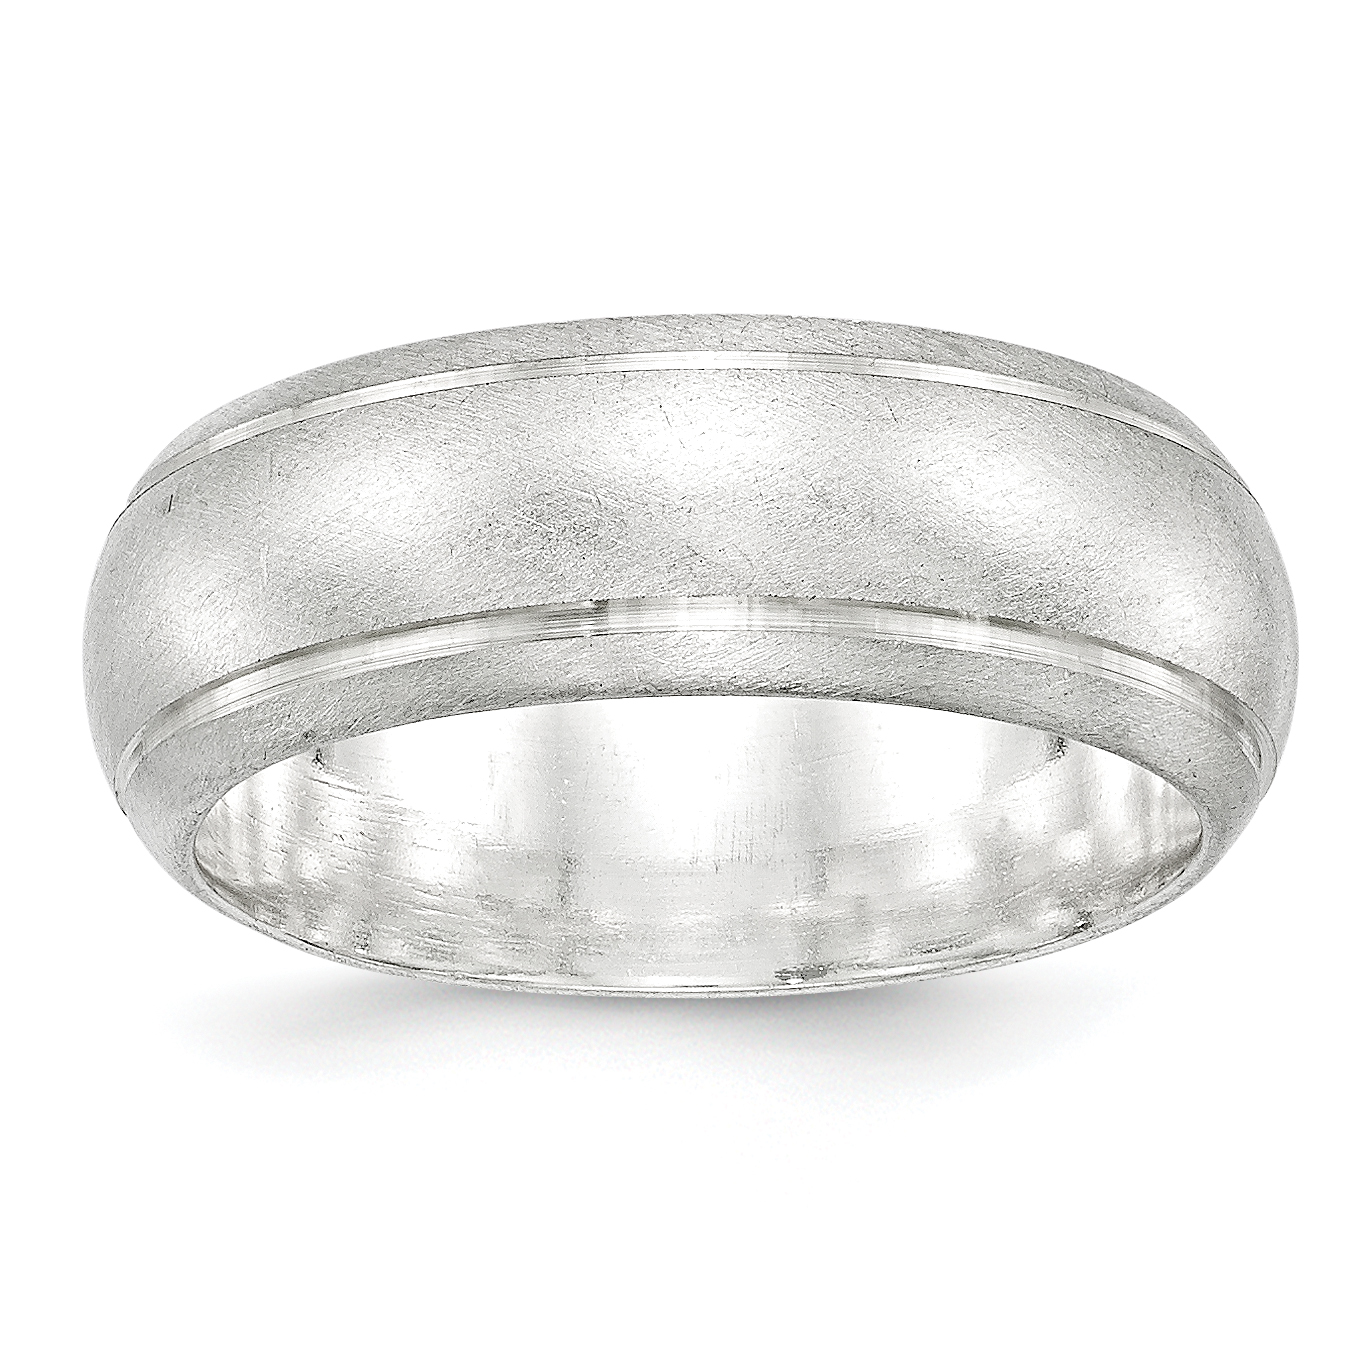 925 Sterling Silver 8mm Finish Wedding Ring Band Size 9.00 Classic Fine Jewelry Gifts For Women For Her - image 2 de 2